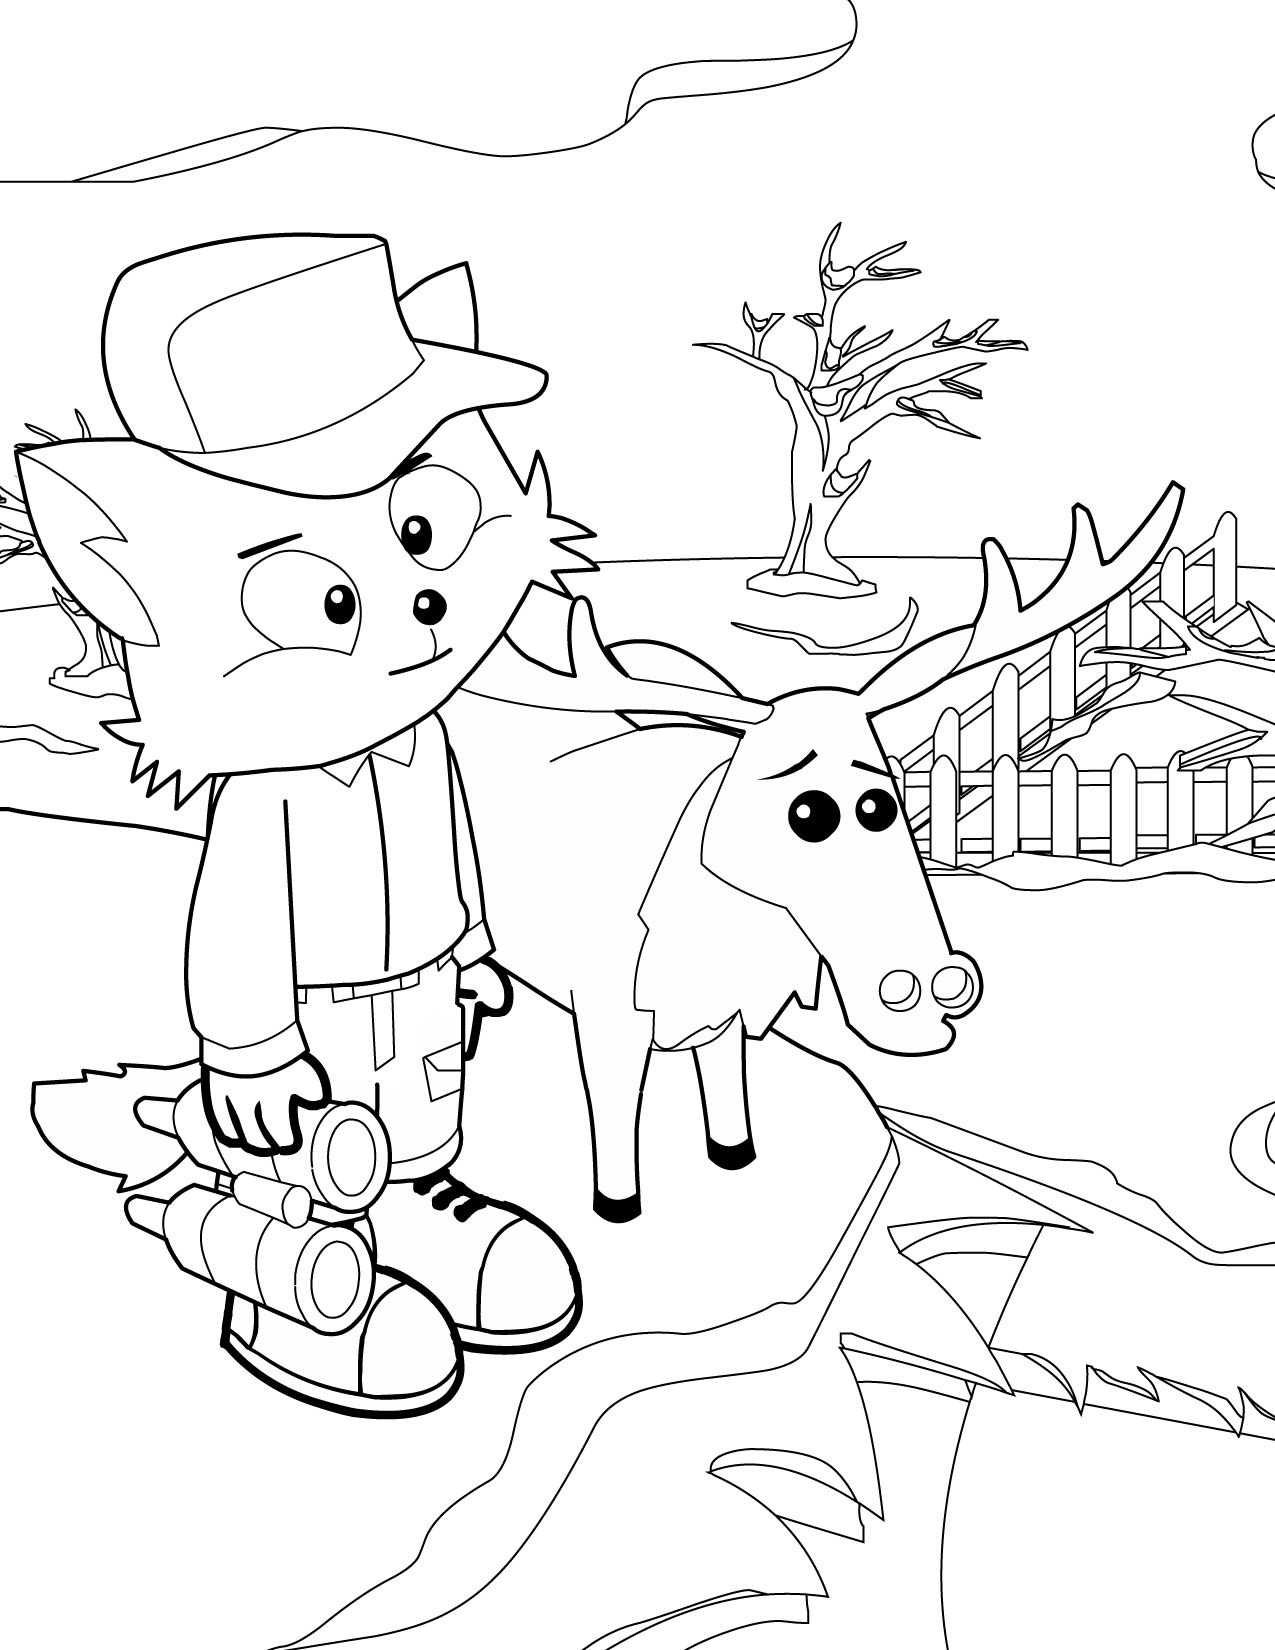 1275x1650 Winter Wonderland Coloring Page Sheet Welcome To Dover